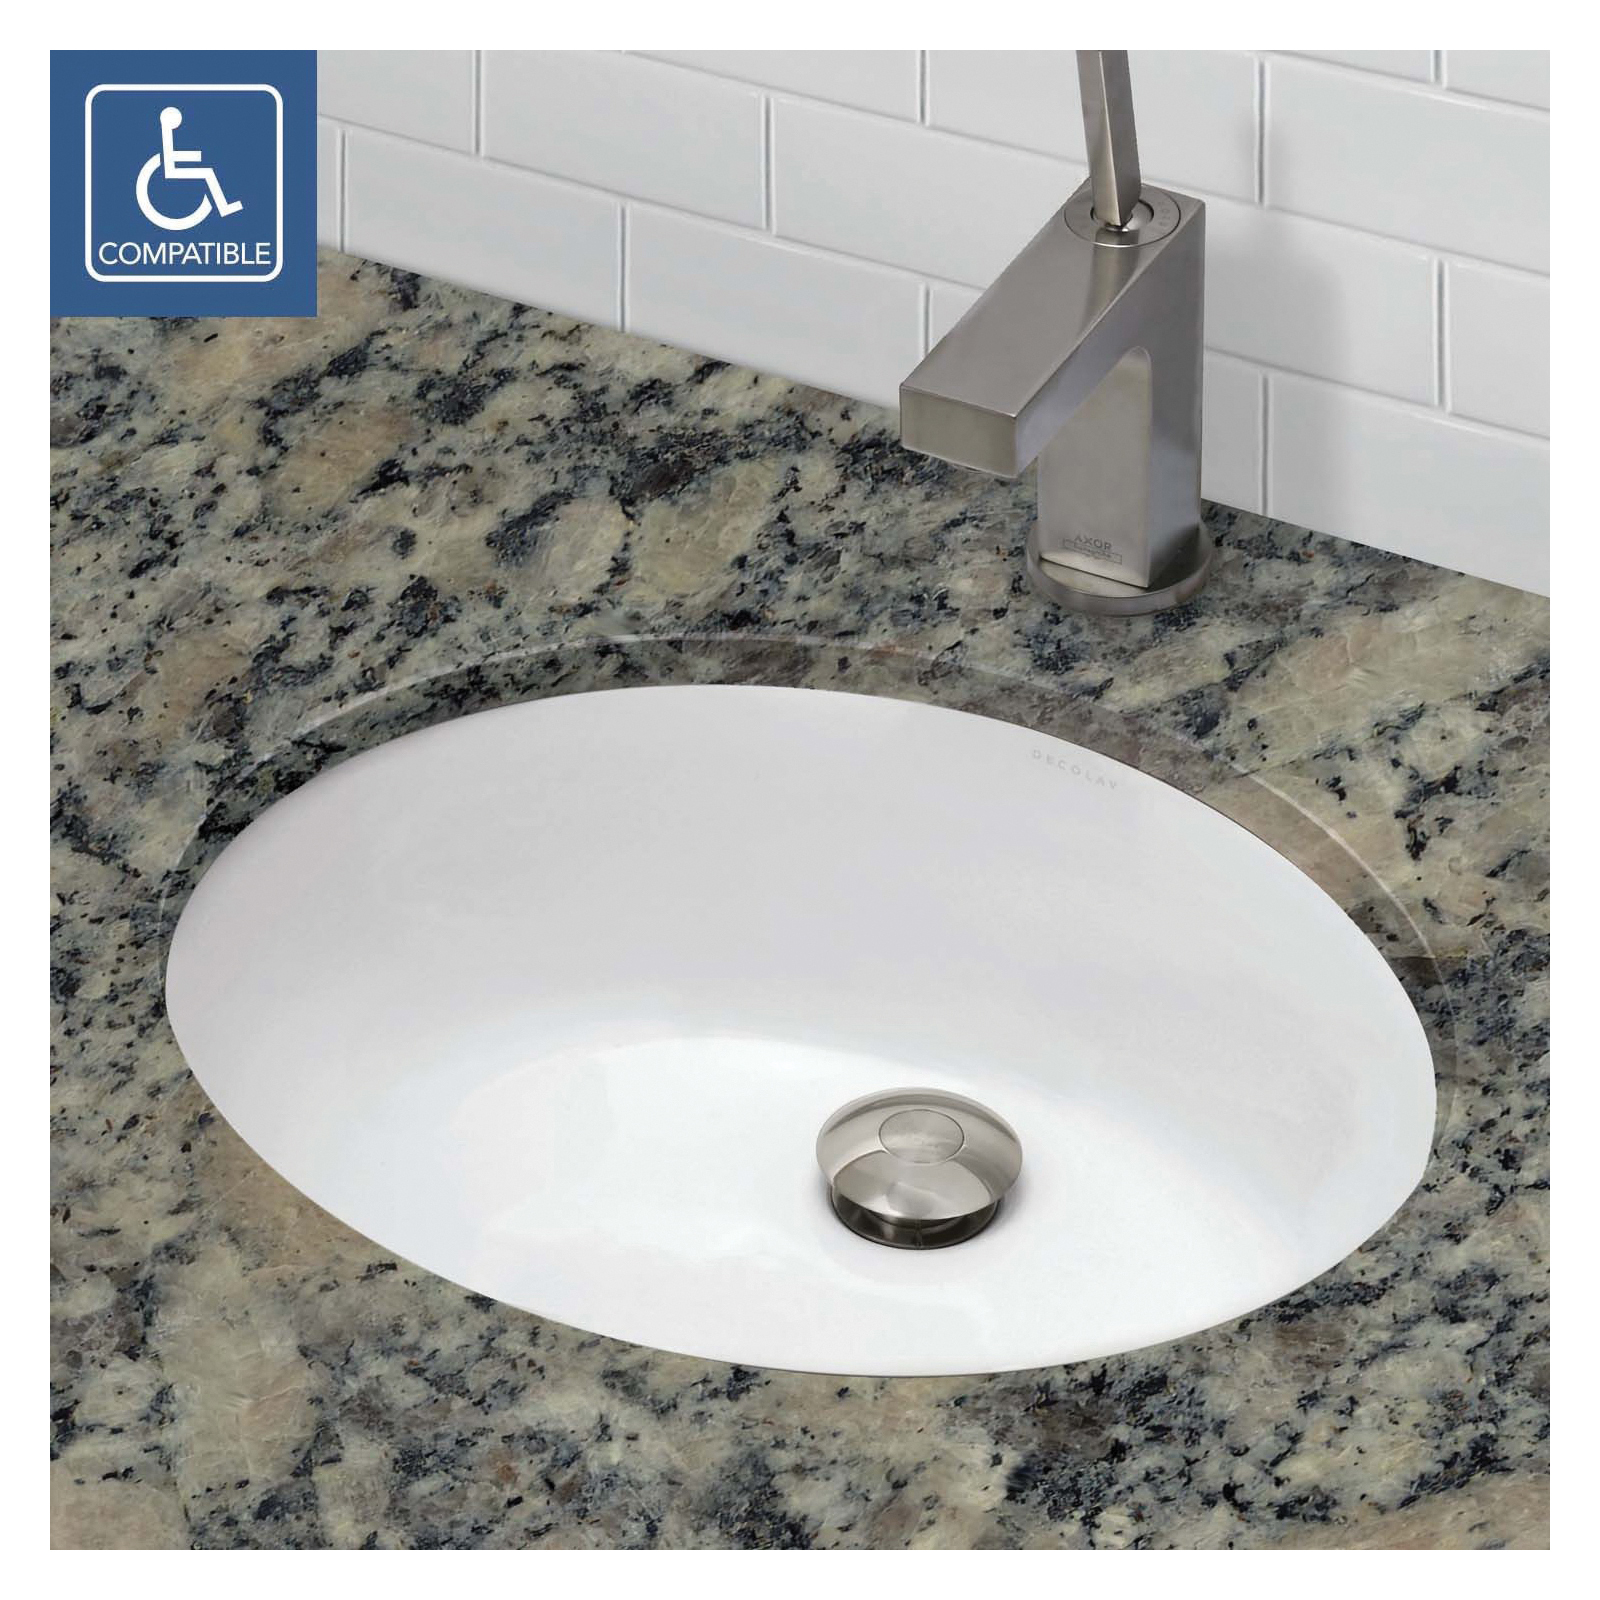 DECOLAV® 1401-CWH Classically Redefined® Bathroom Sink With Overflow, Oval, 19.25 in W x 16.25 in D x 7.13 in H, Under Mount, Vitreous China, Ceramic White, Import